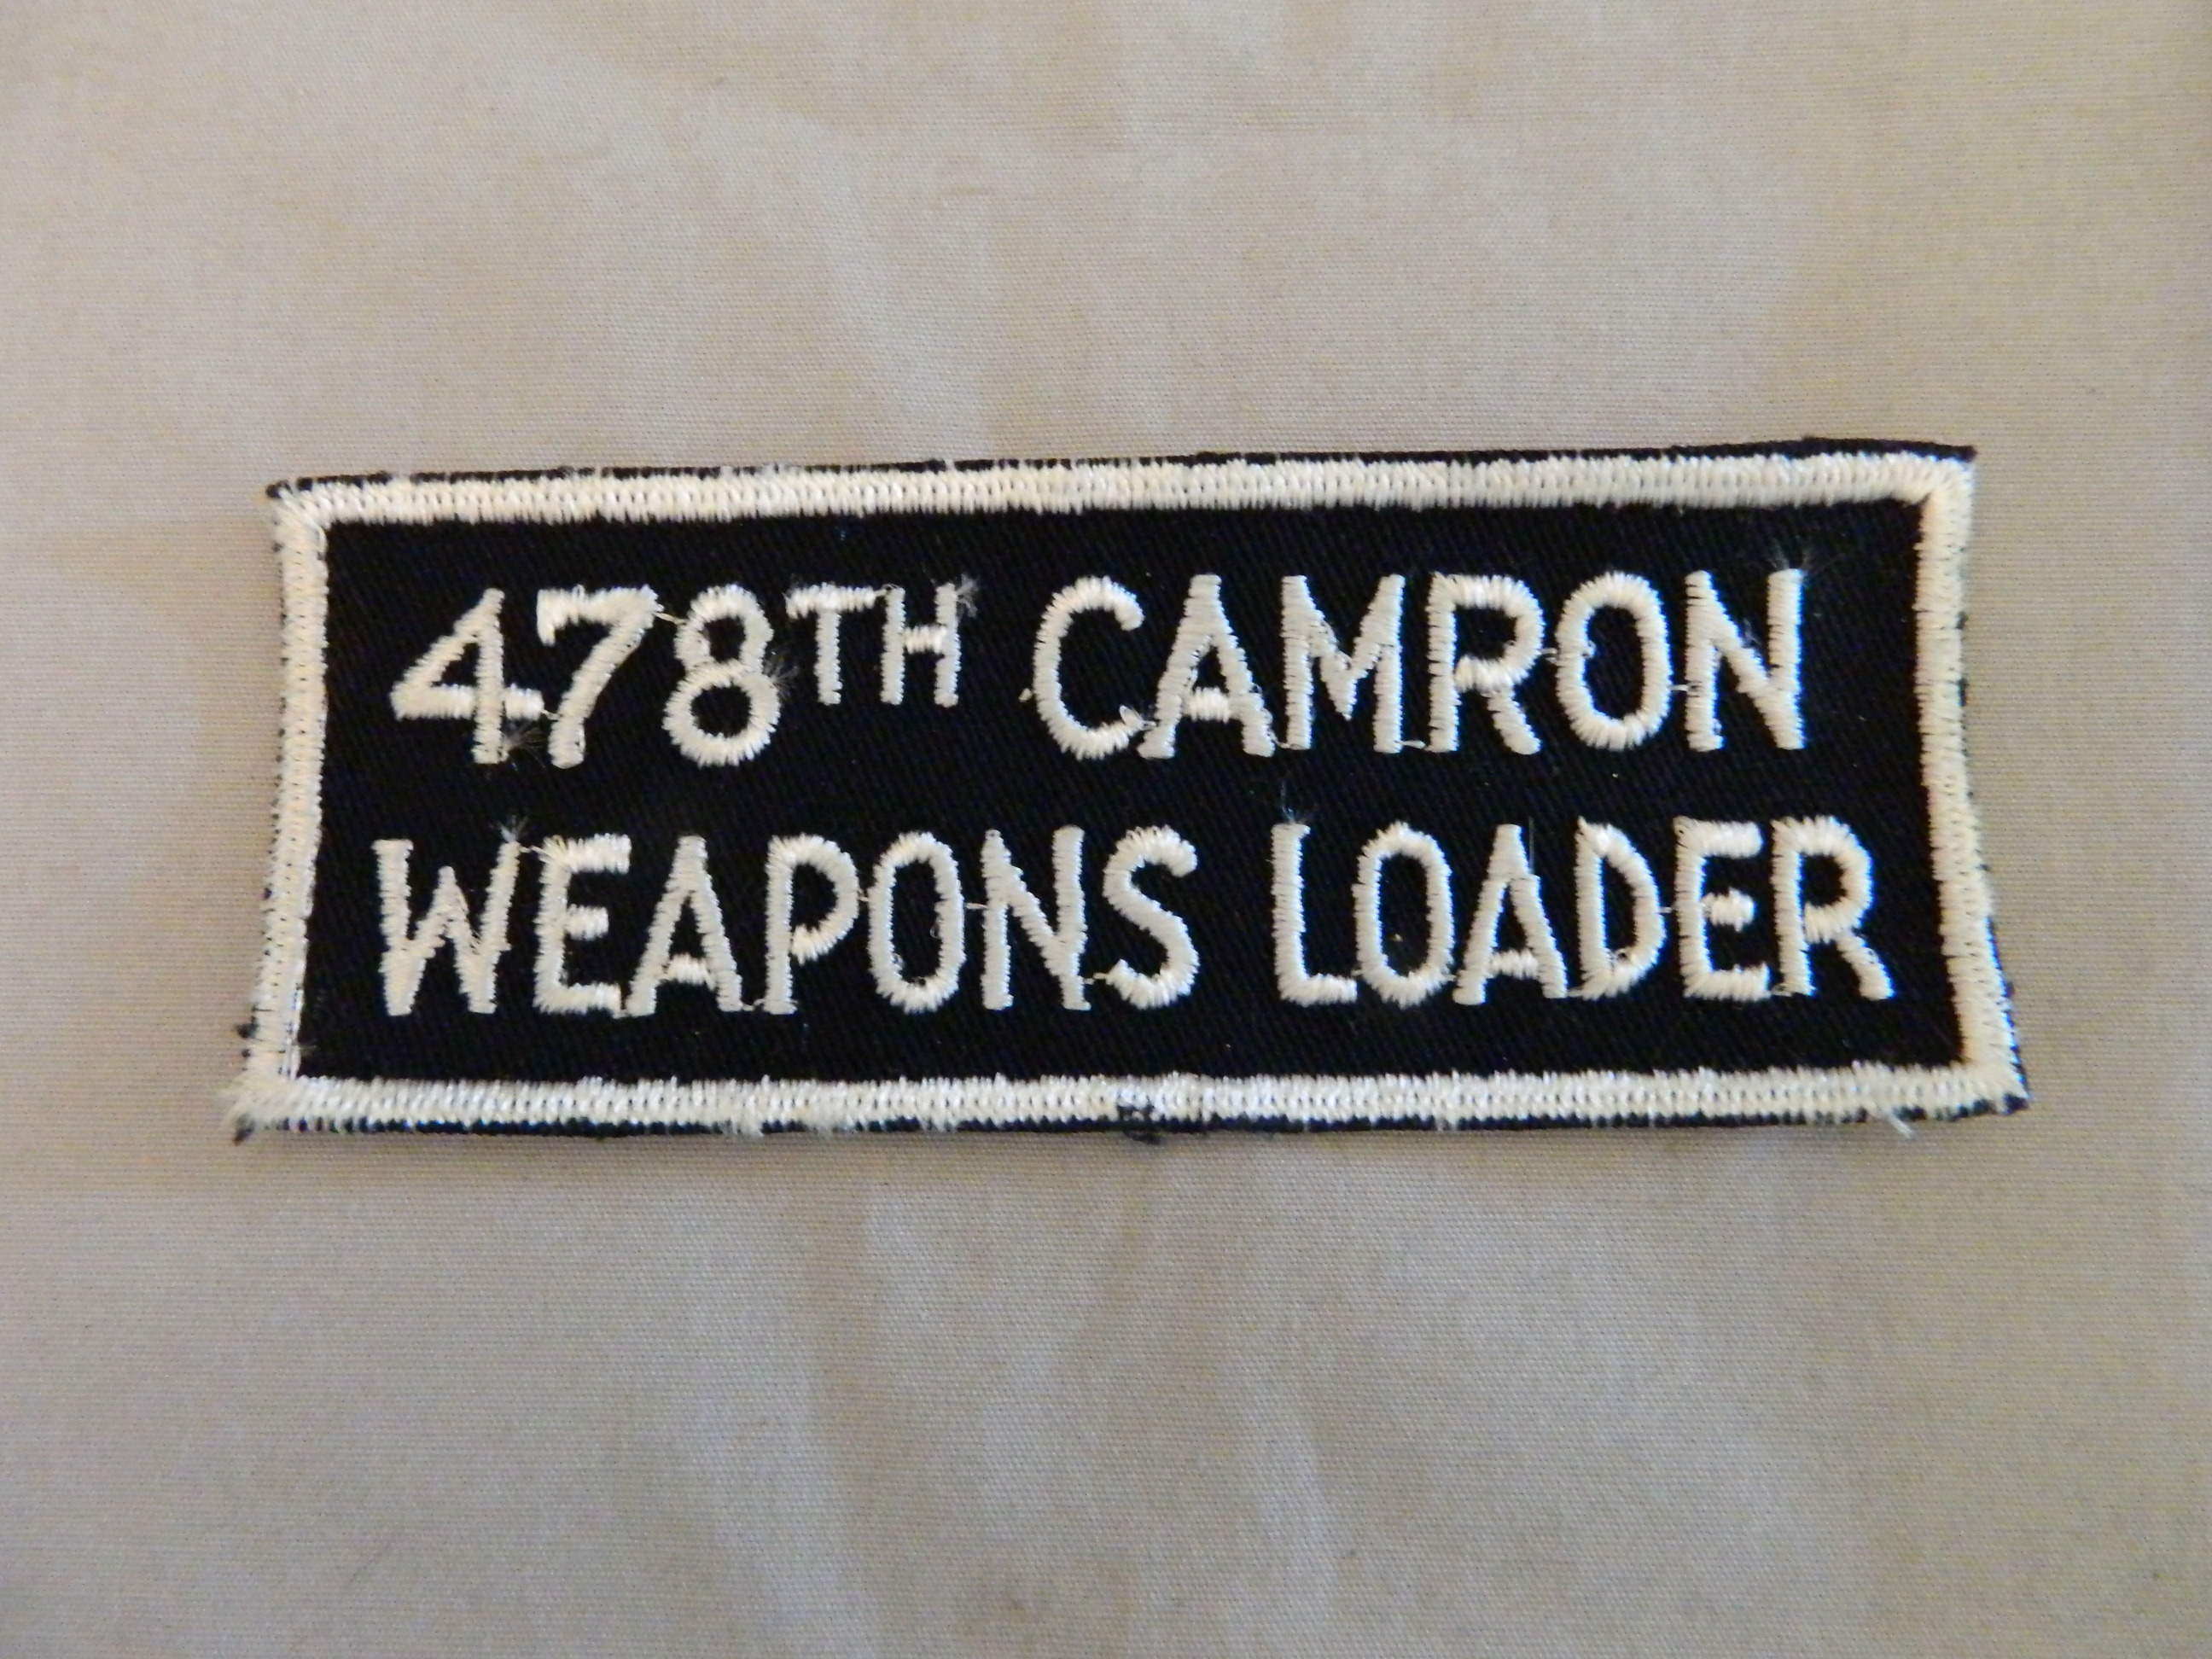 USN: 478th CAMRON WEAPONS LOADER Patch